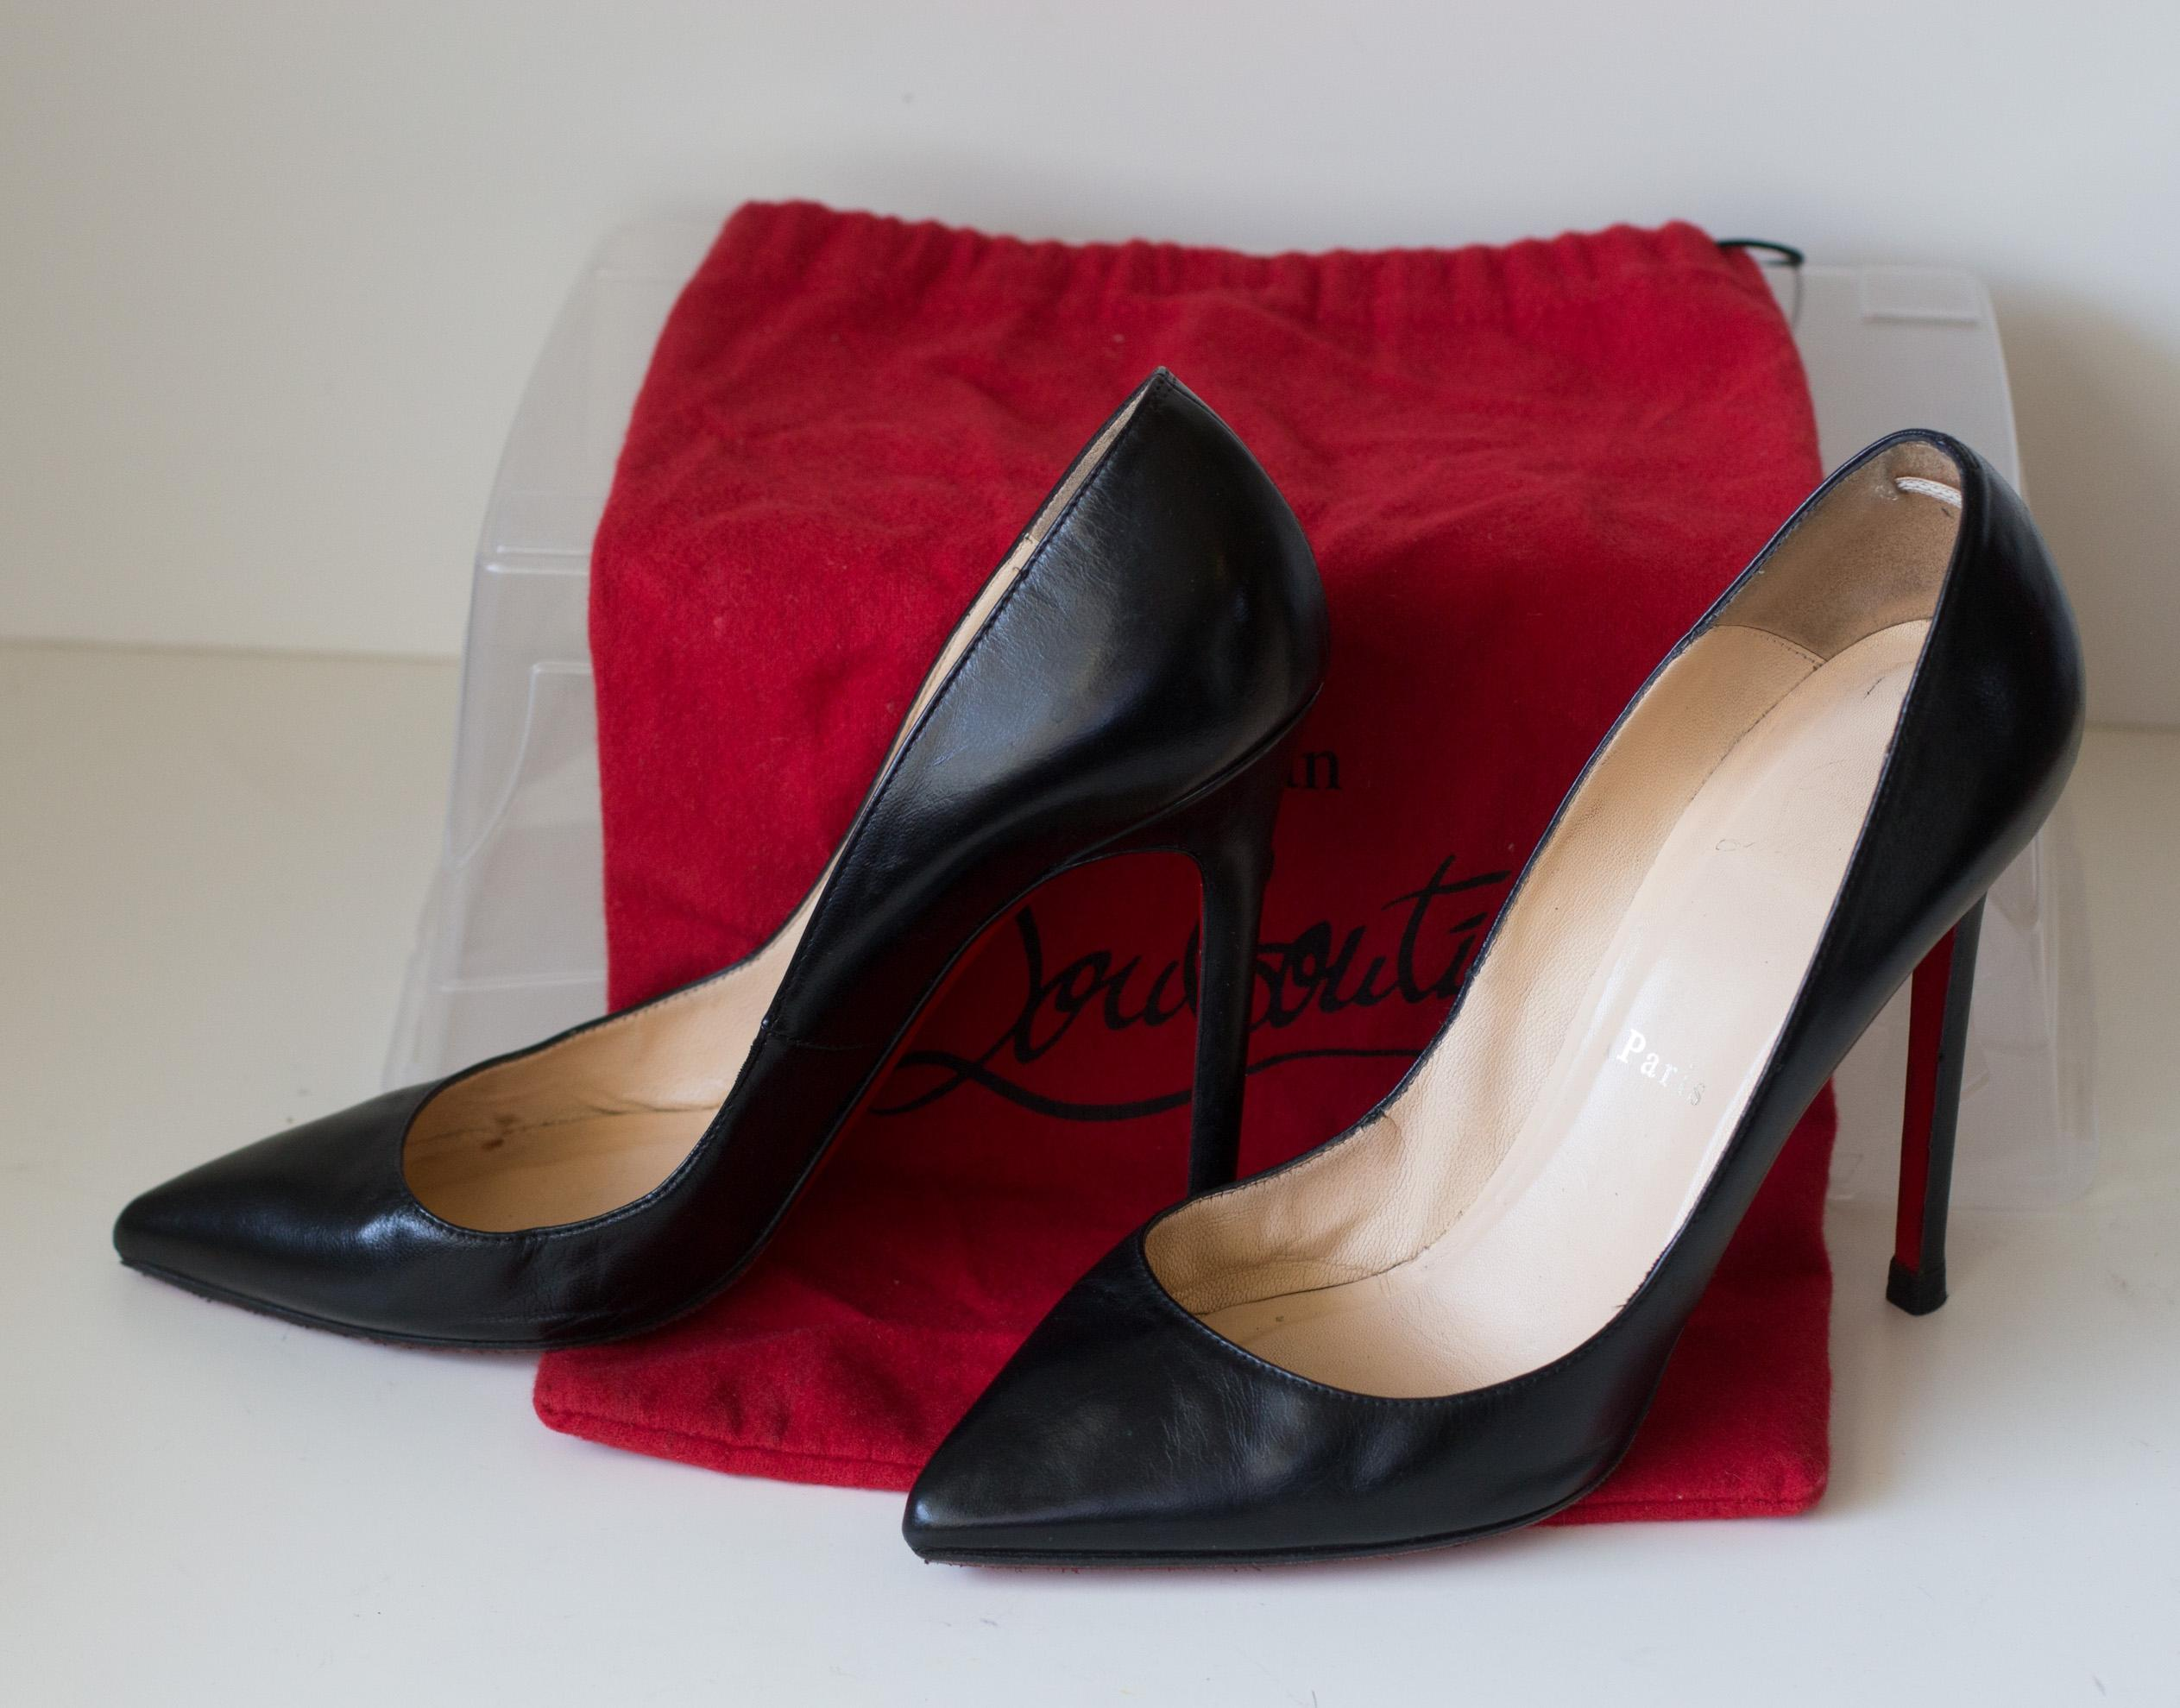 55fc782a5497 Christian Louboutin Black Pigalle 120 Leather Leather Leather 8 Pumps Size  EU 38.5 (Approx.